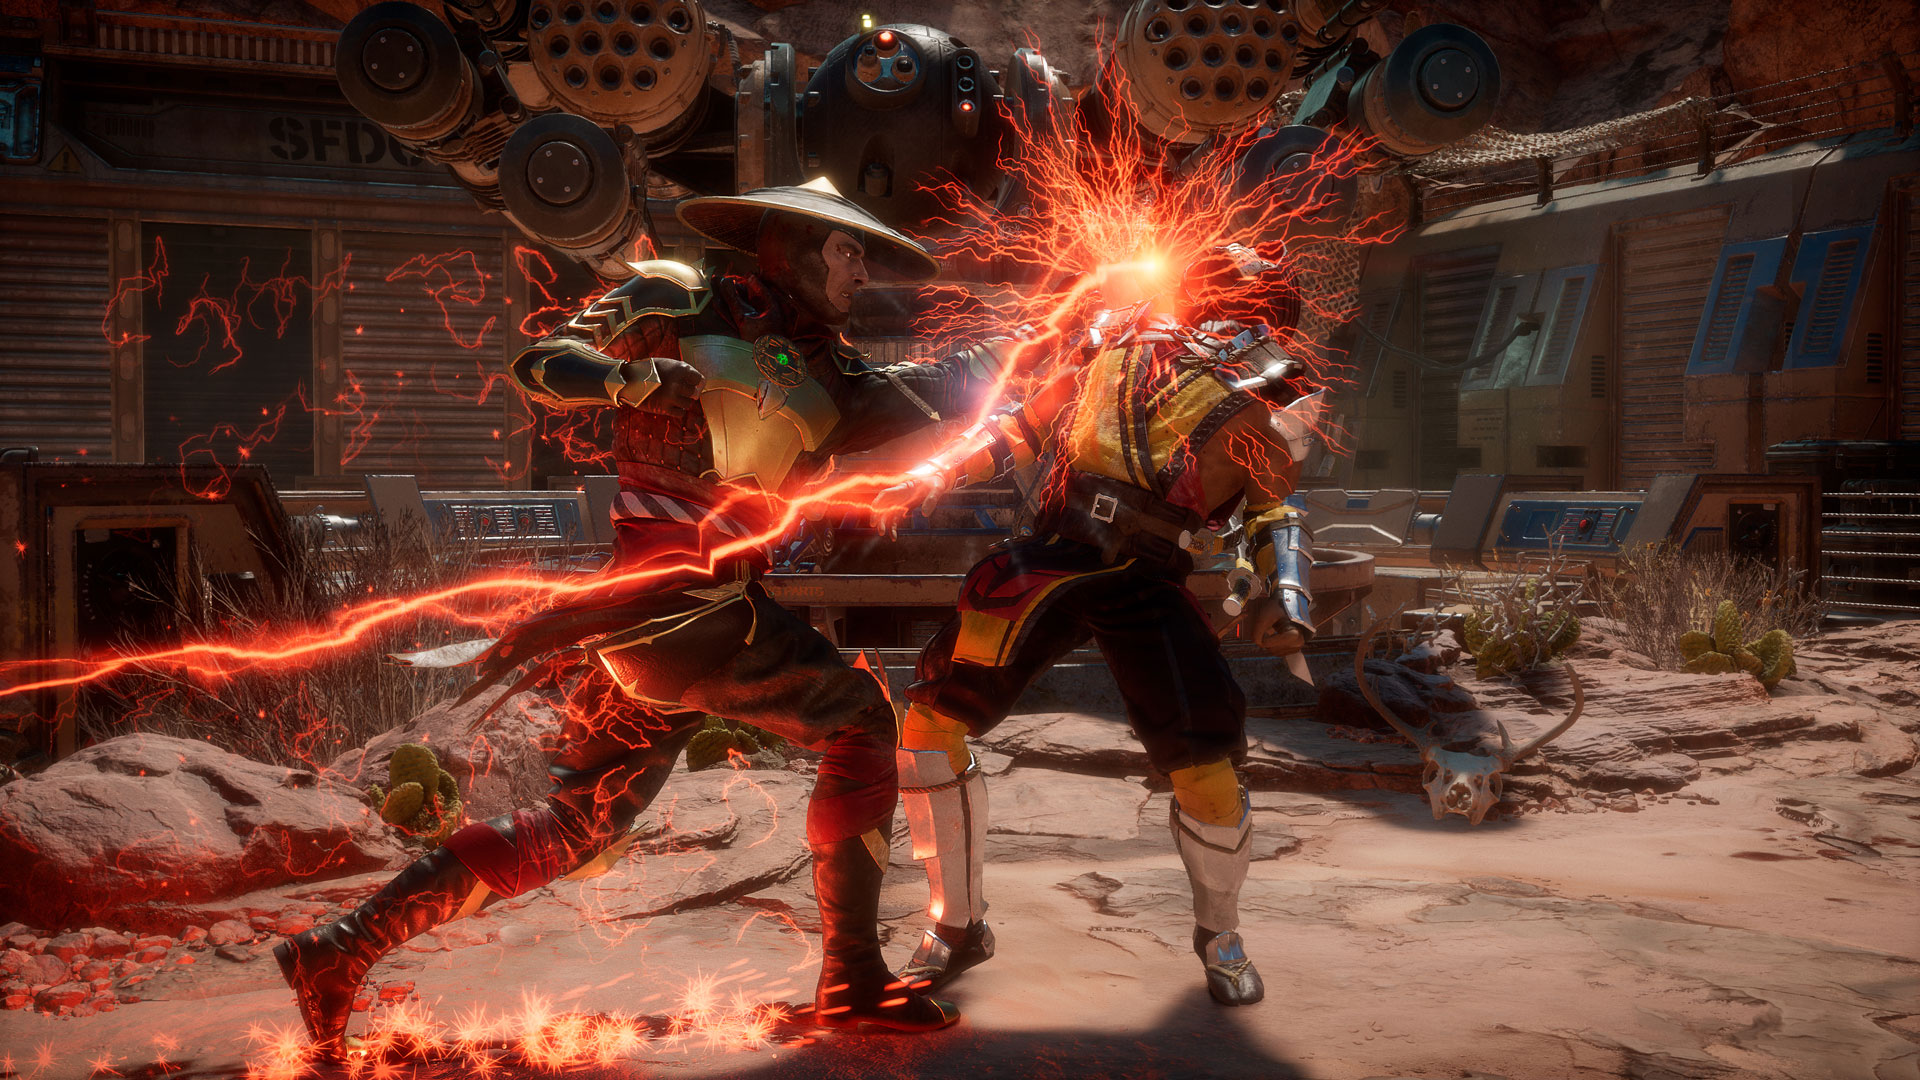 MORTAL KOMBAT 11 (STEAM KEY) RU+CIS